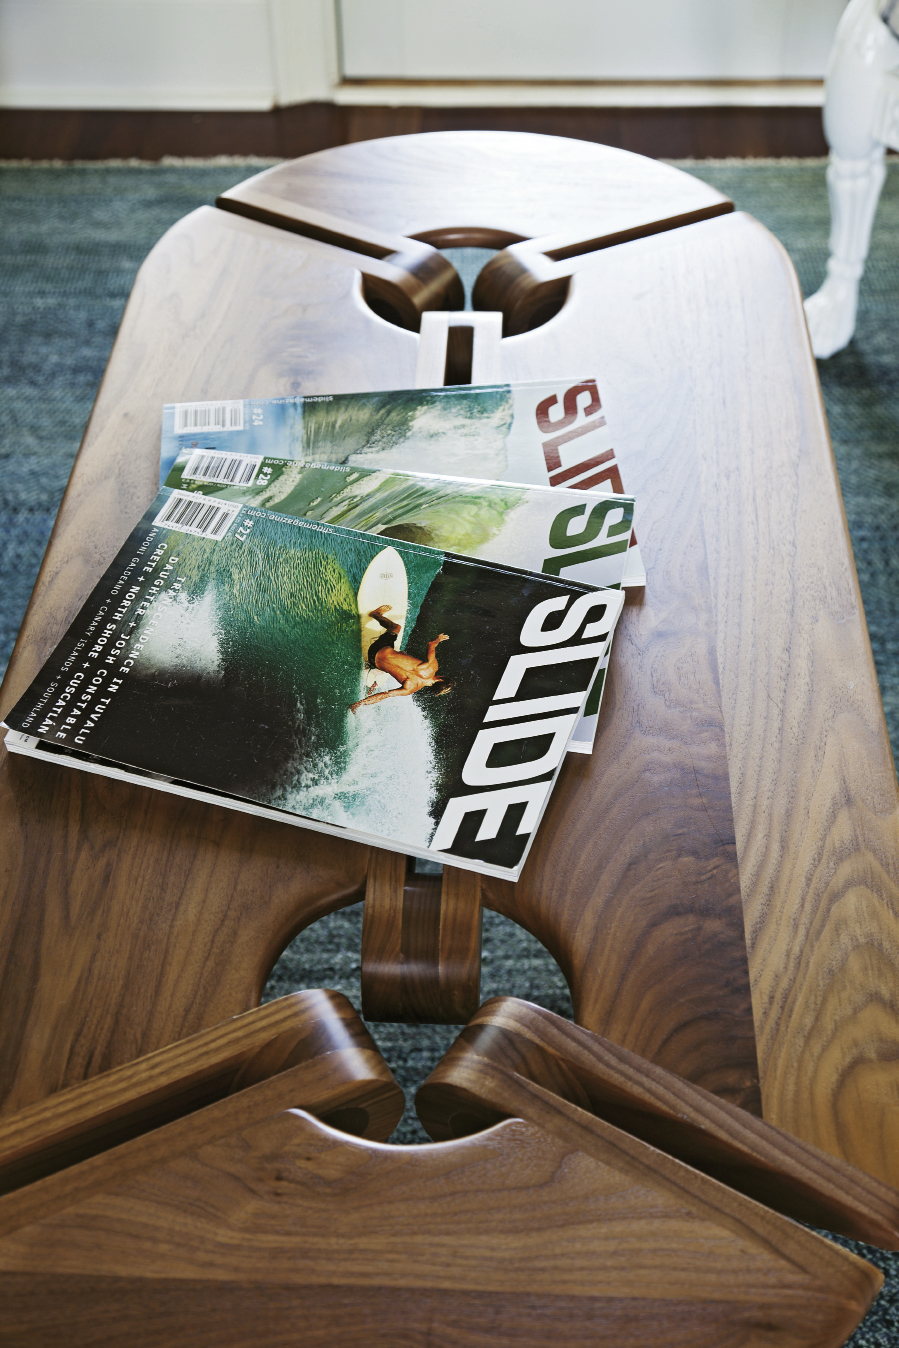 Surf magazines put a personal stamp on a mid-century-style coffee table by New Breed Furniture Network.